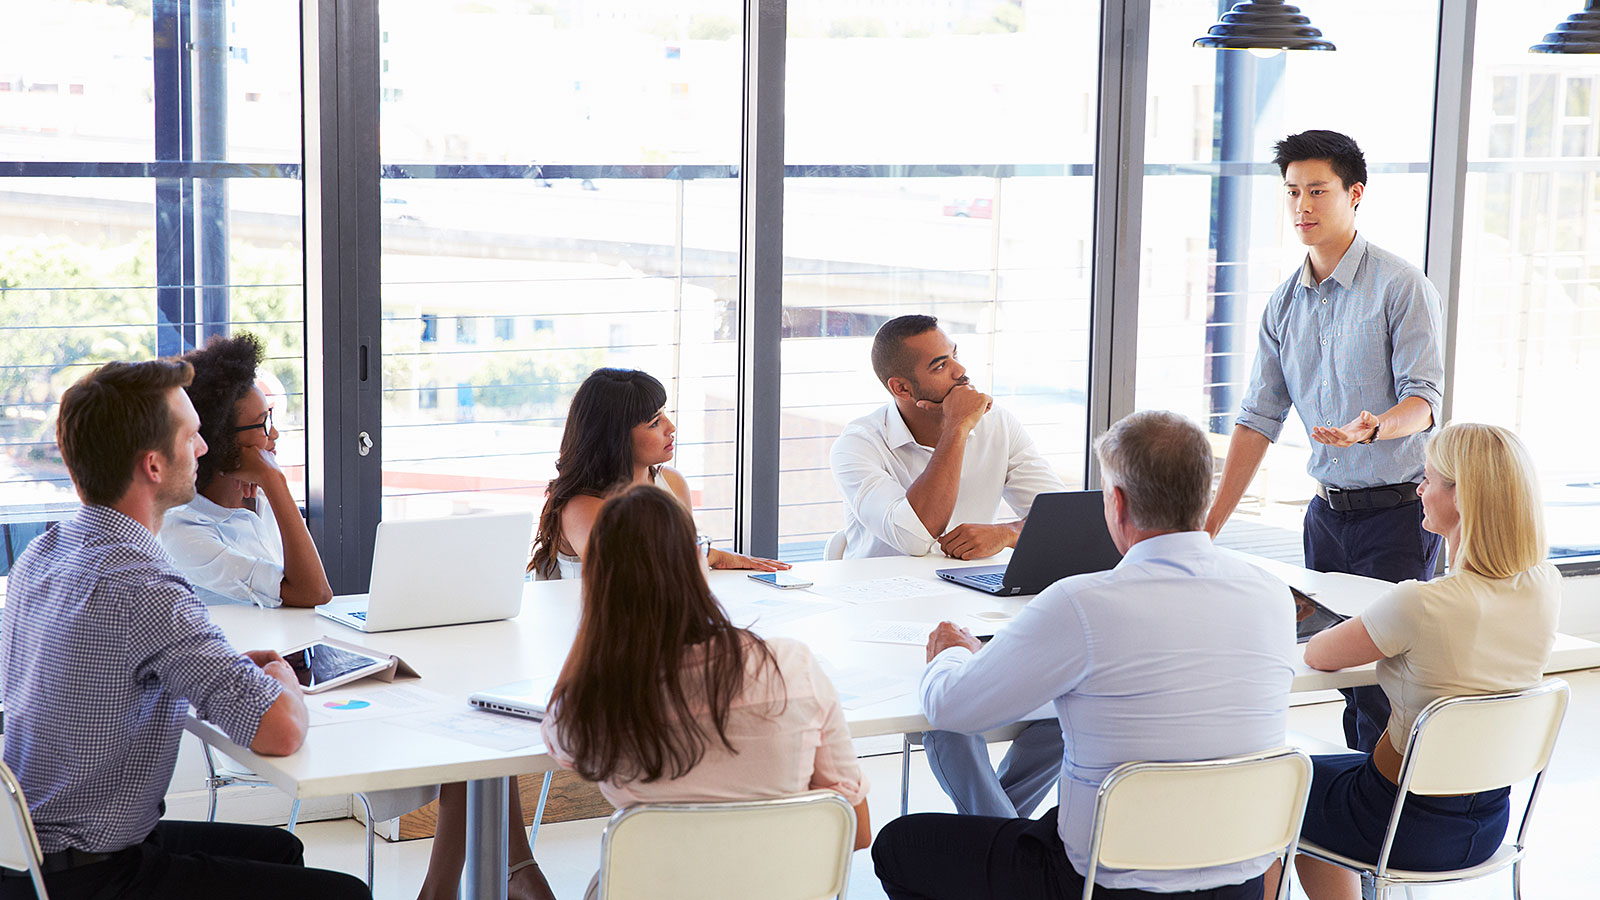 Why you need to axe all mandatory meetings